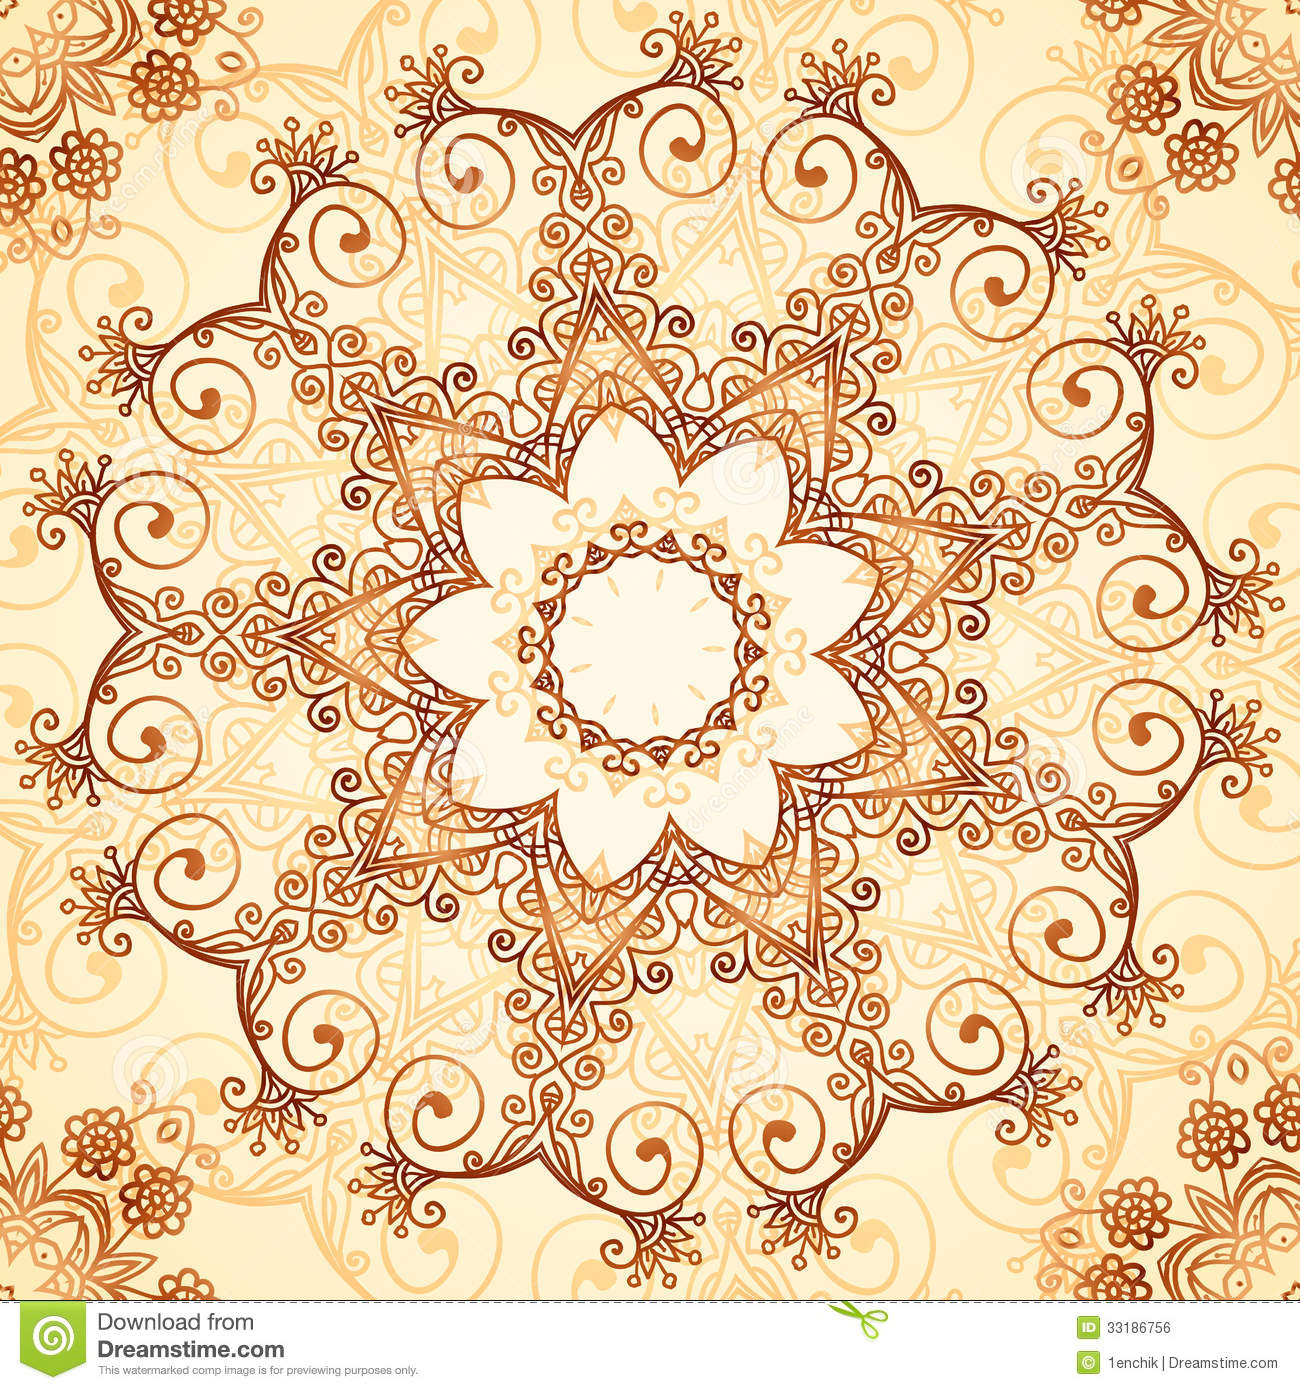 Ornate vintage vector background in mehndi style royalty free stock - Royalty Free Stock Photo Download Ornate Vintage Vector Pattern In Mehndi Style